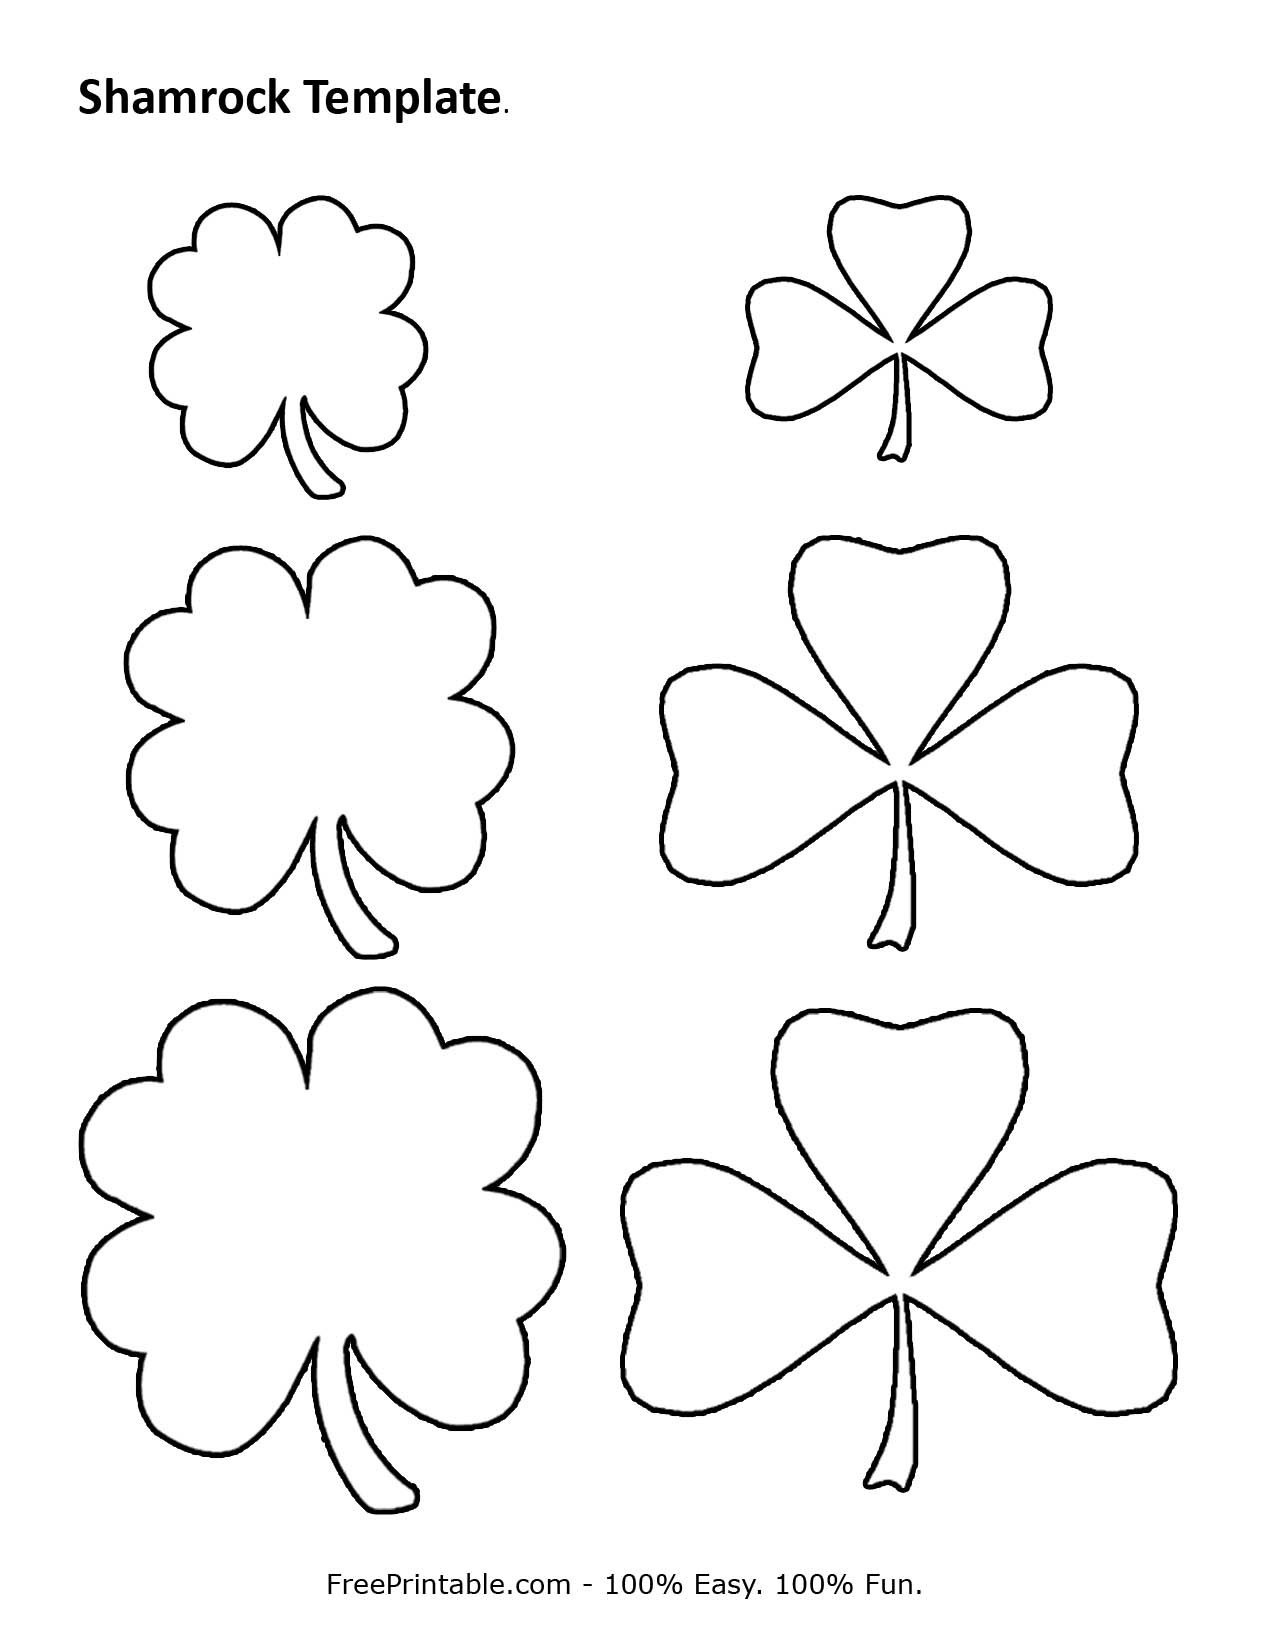 Customize Your Free Printable Shamrock Template | Home | Shamrock - Shamrock Template Free Printable